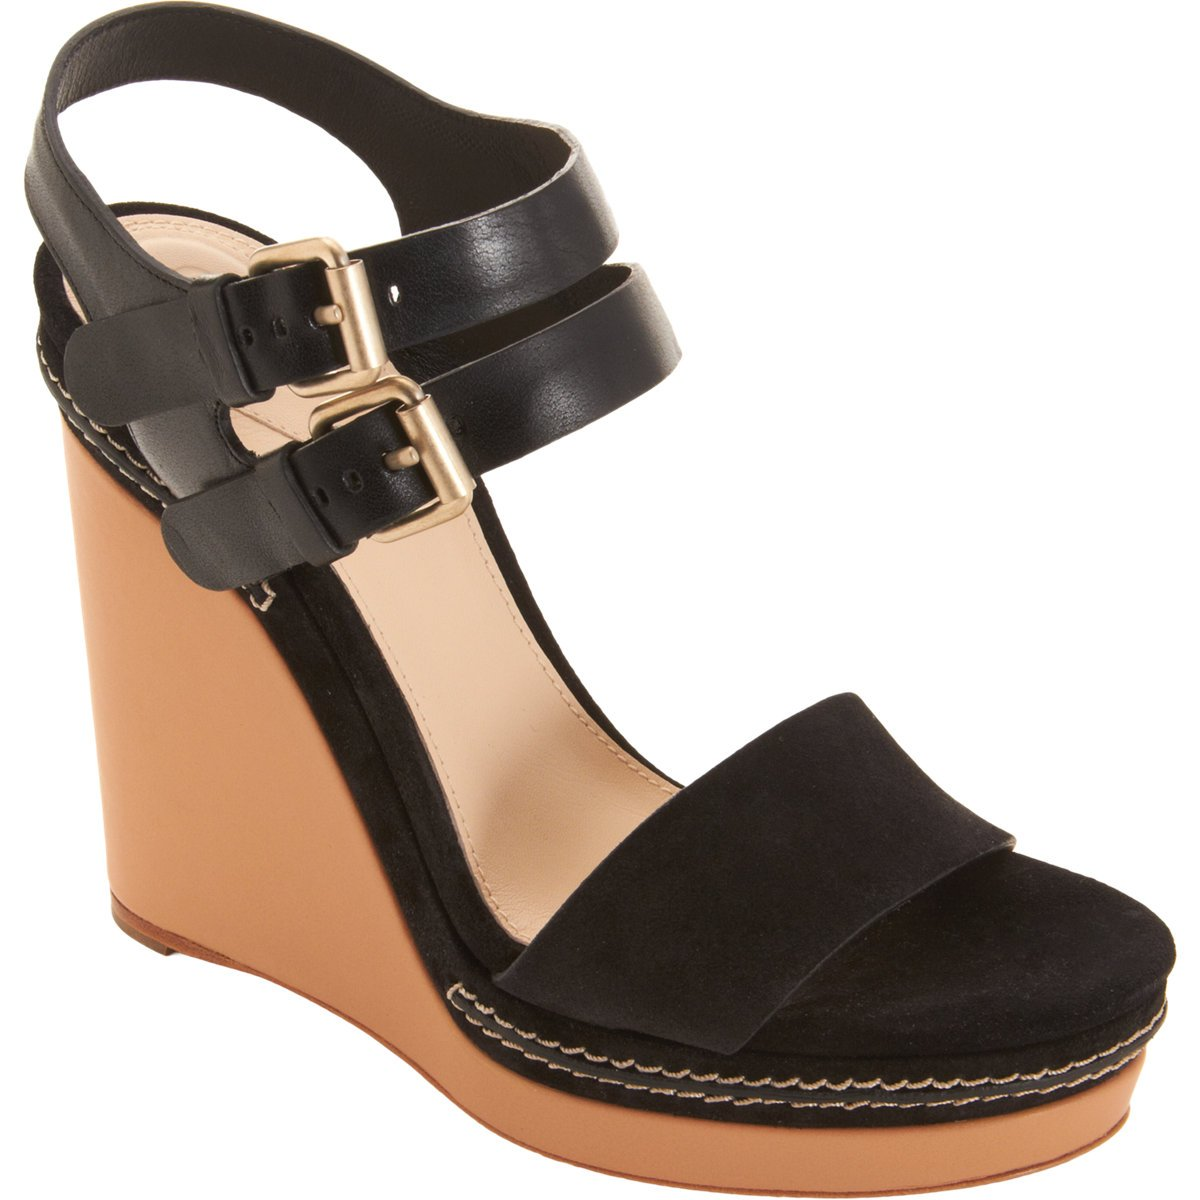 Chloé Double Ankle Strap Wedge Sandal in Black | Lyst